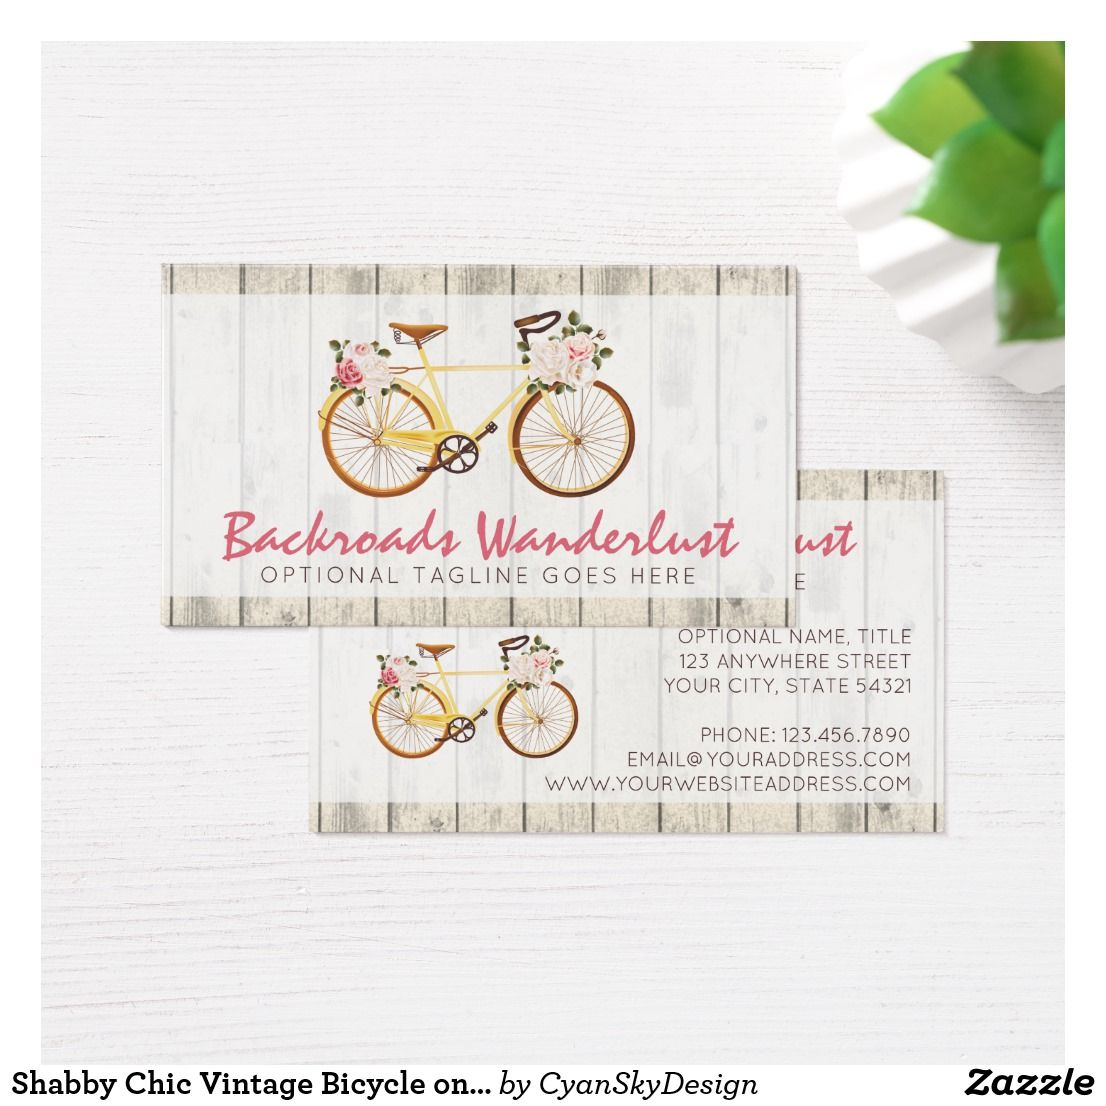 Shabby chic vintage bicycle on rustic wood custom business card shabby chic vintage bicycle on rustic wood custom business card reheart Image collections